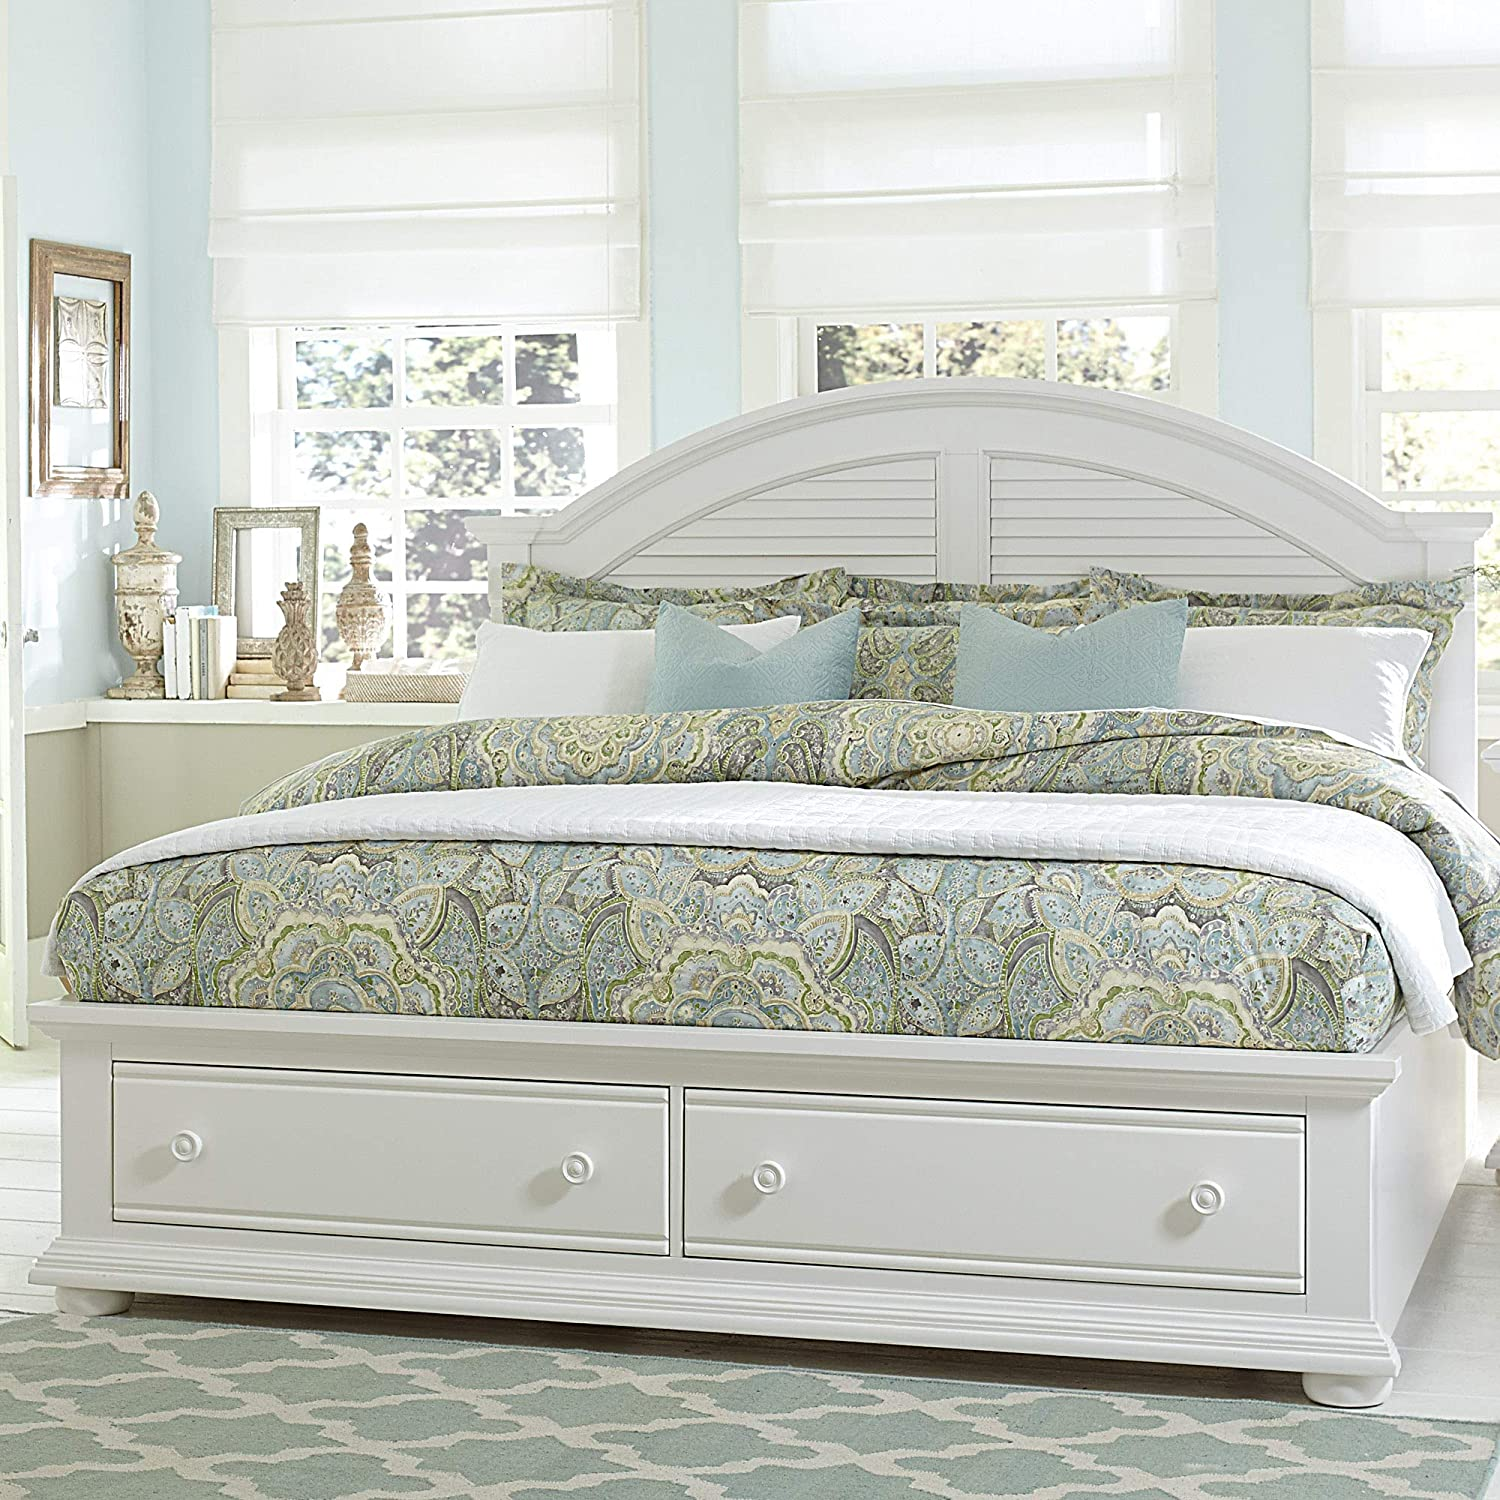 Liberty Furniture Industries Summer House Queen Storage Bed, Oyster White